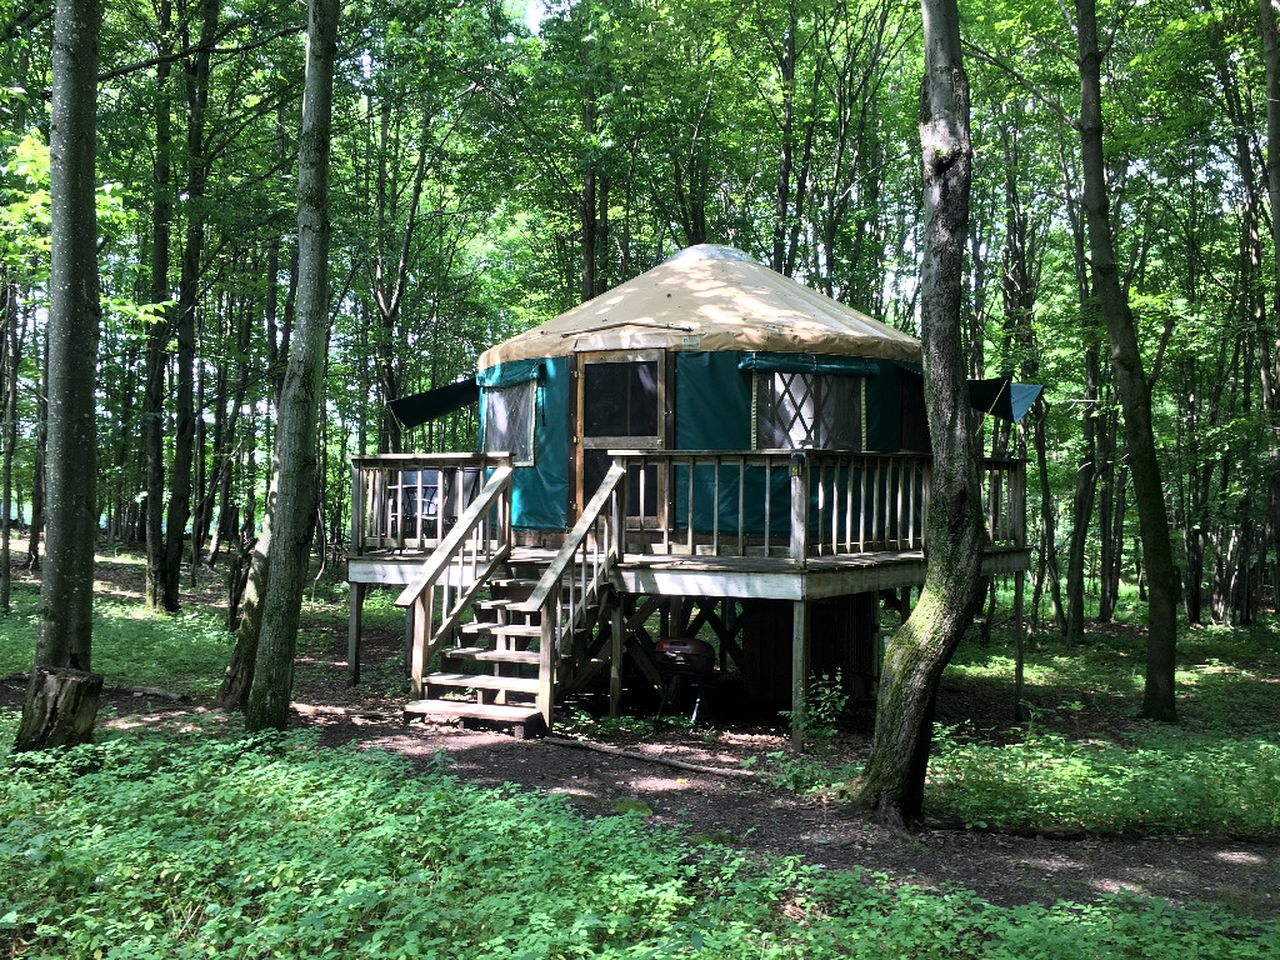 Yurts (East Meredith, New York, United States)